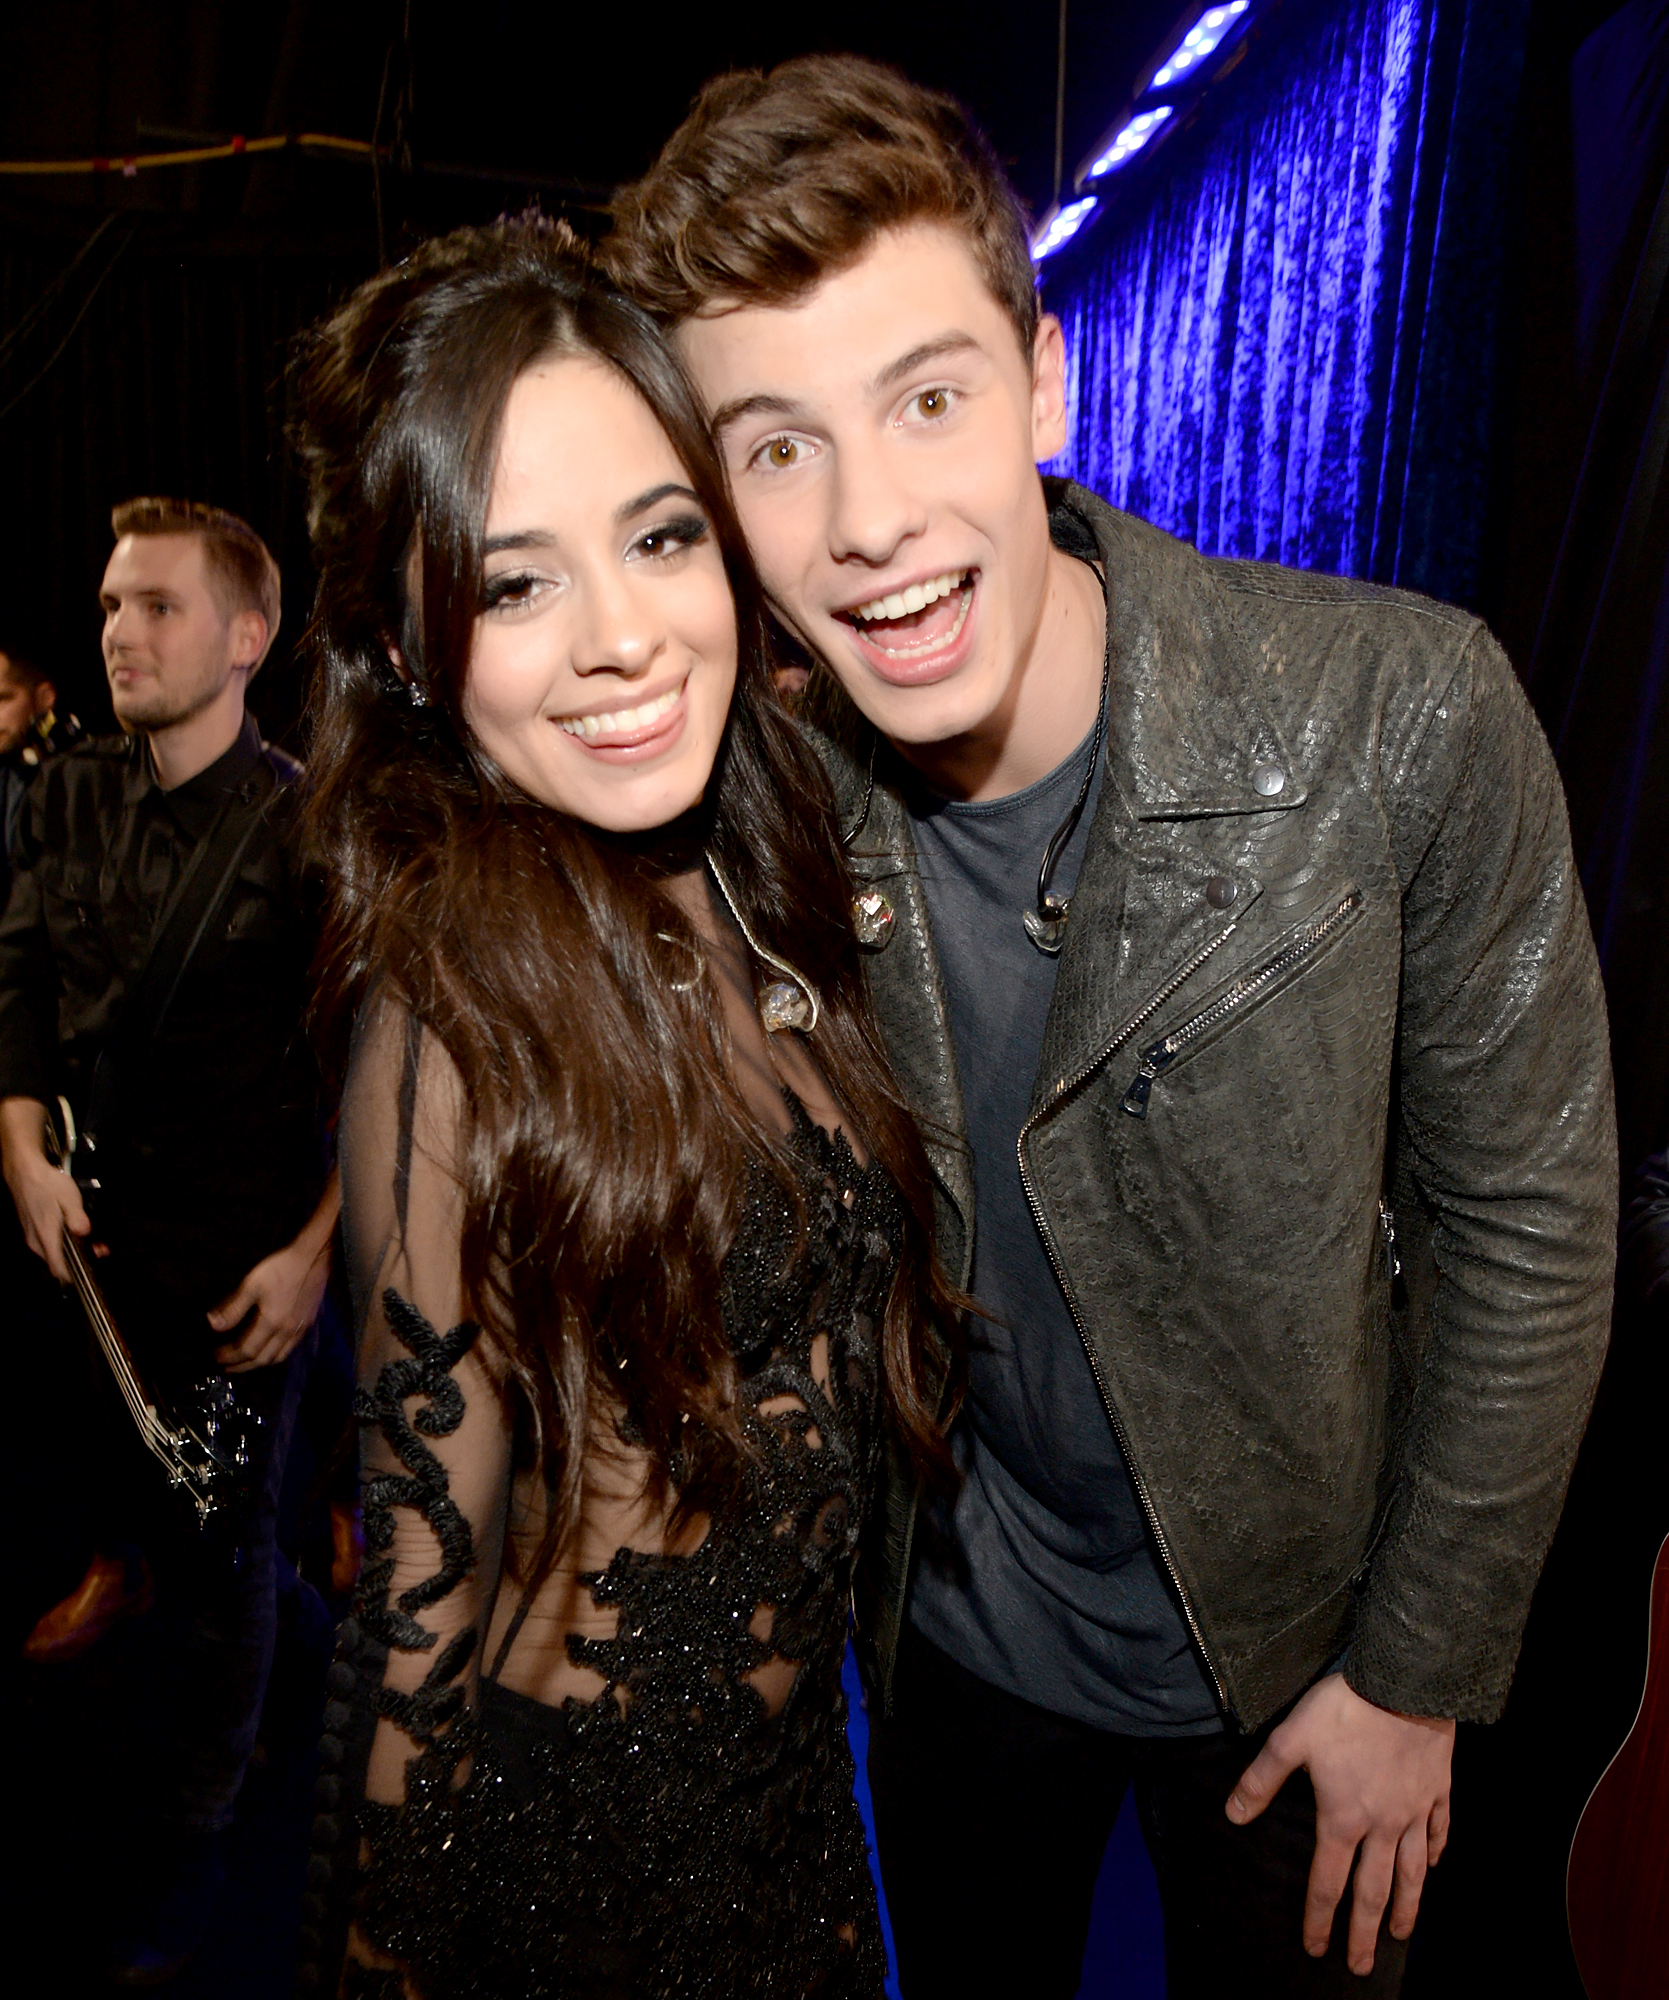 Shawn-Mendes-Camila-Cabello-hanging-out-2